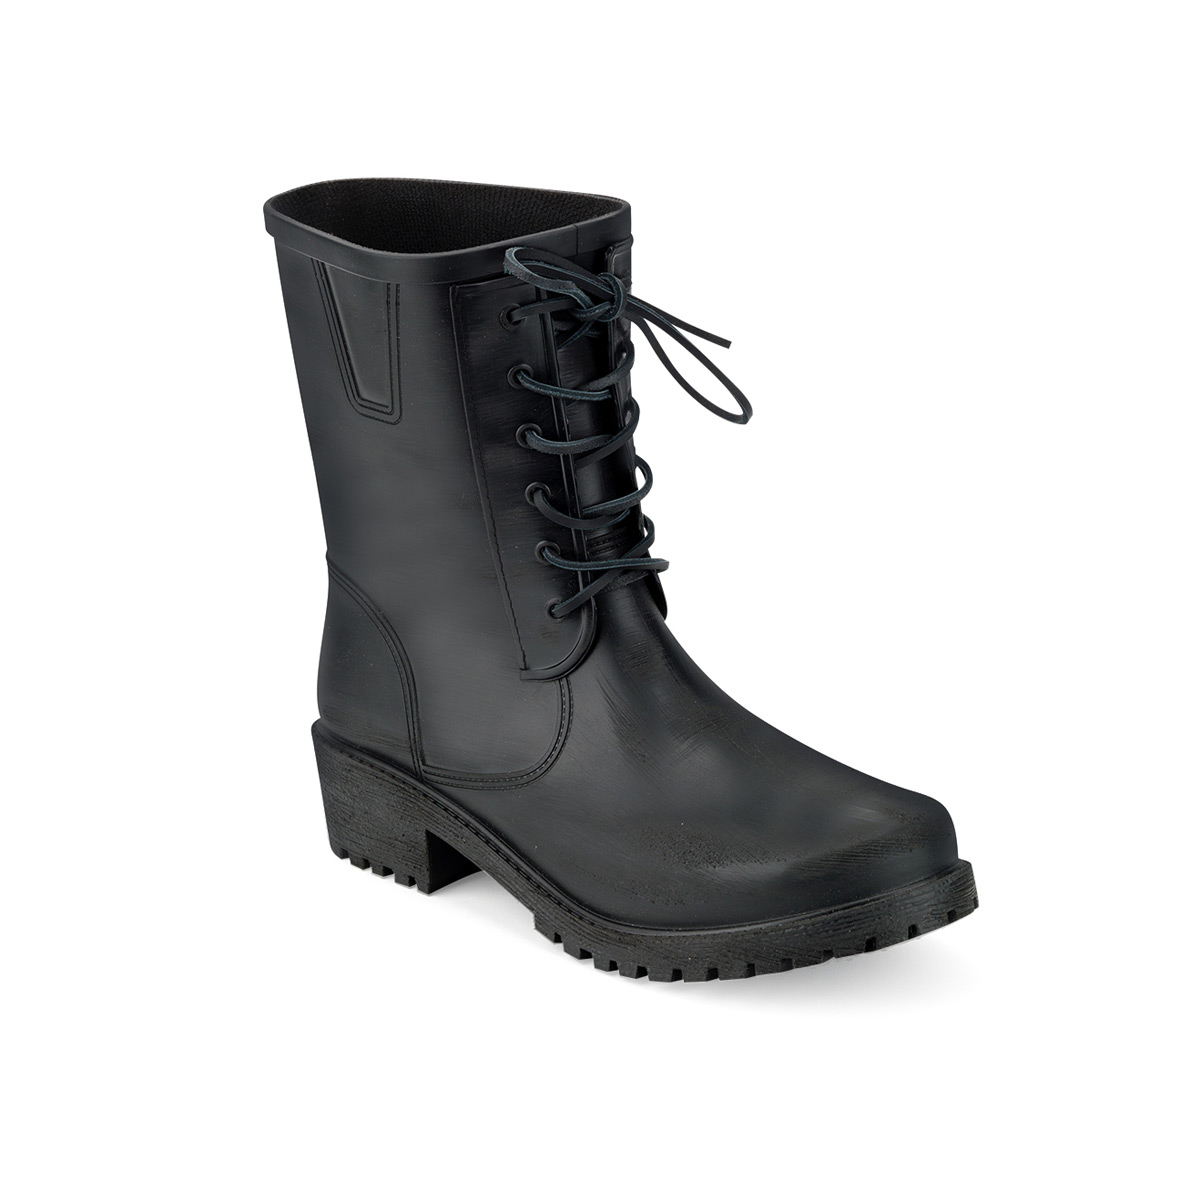 Brushed pvc biker boot with laces